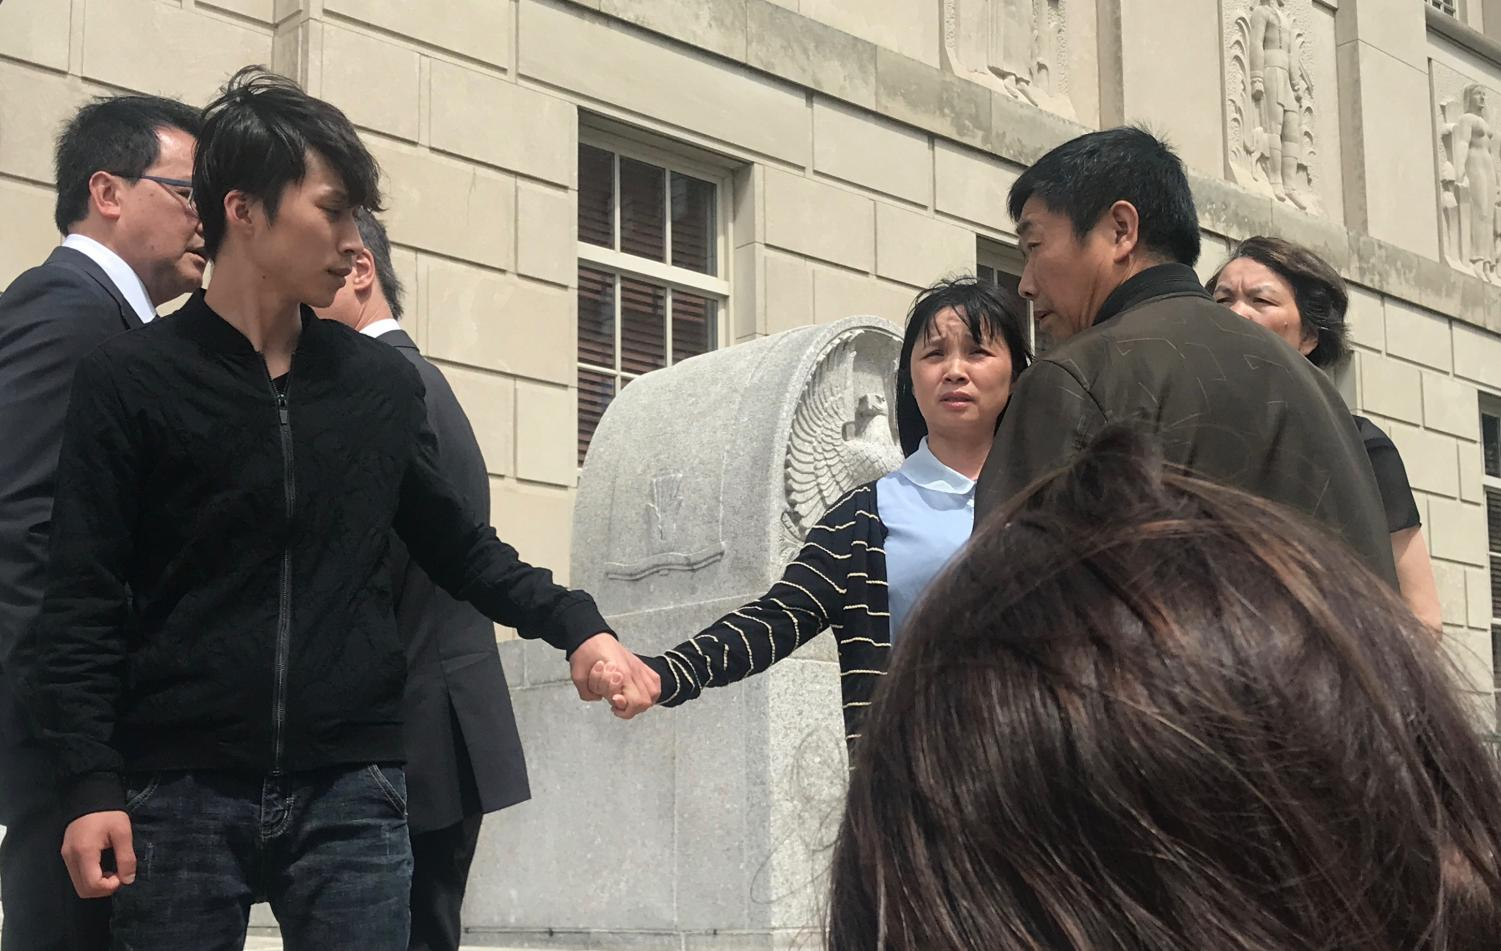 Xinyang Zhang, Yingying's brother (left) leads their mother, Lifeng Ye (center) after the family addresses the public. Ronggao Zhang, Yingying and Xinyang's father (right) made the statement. Brendt Christensen was found guilty by the jury on Monday and the sentencing phase will begin July 8.